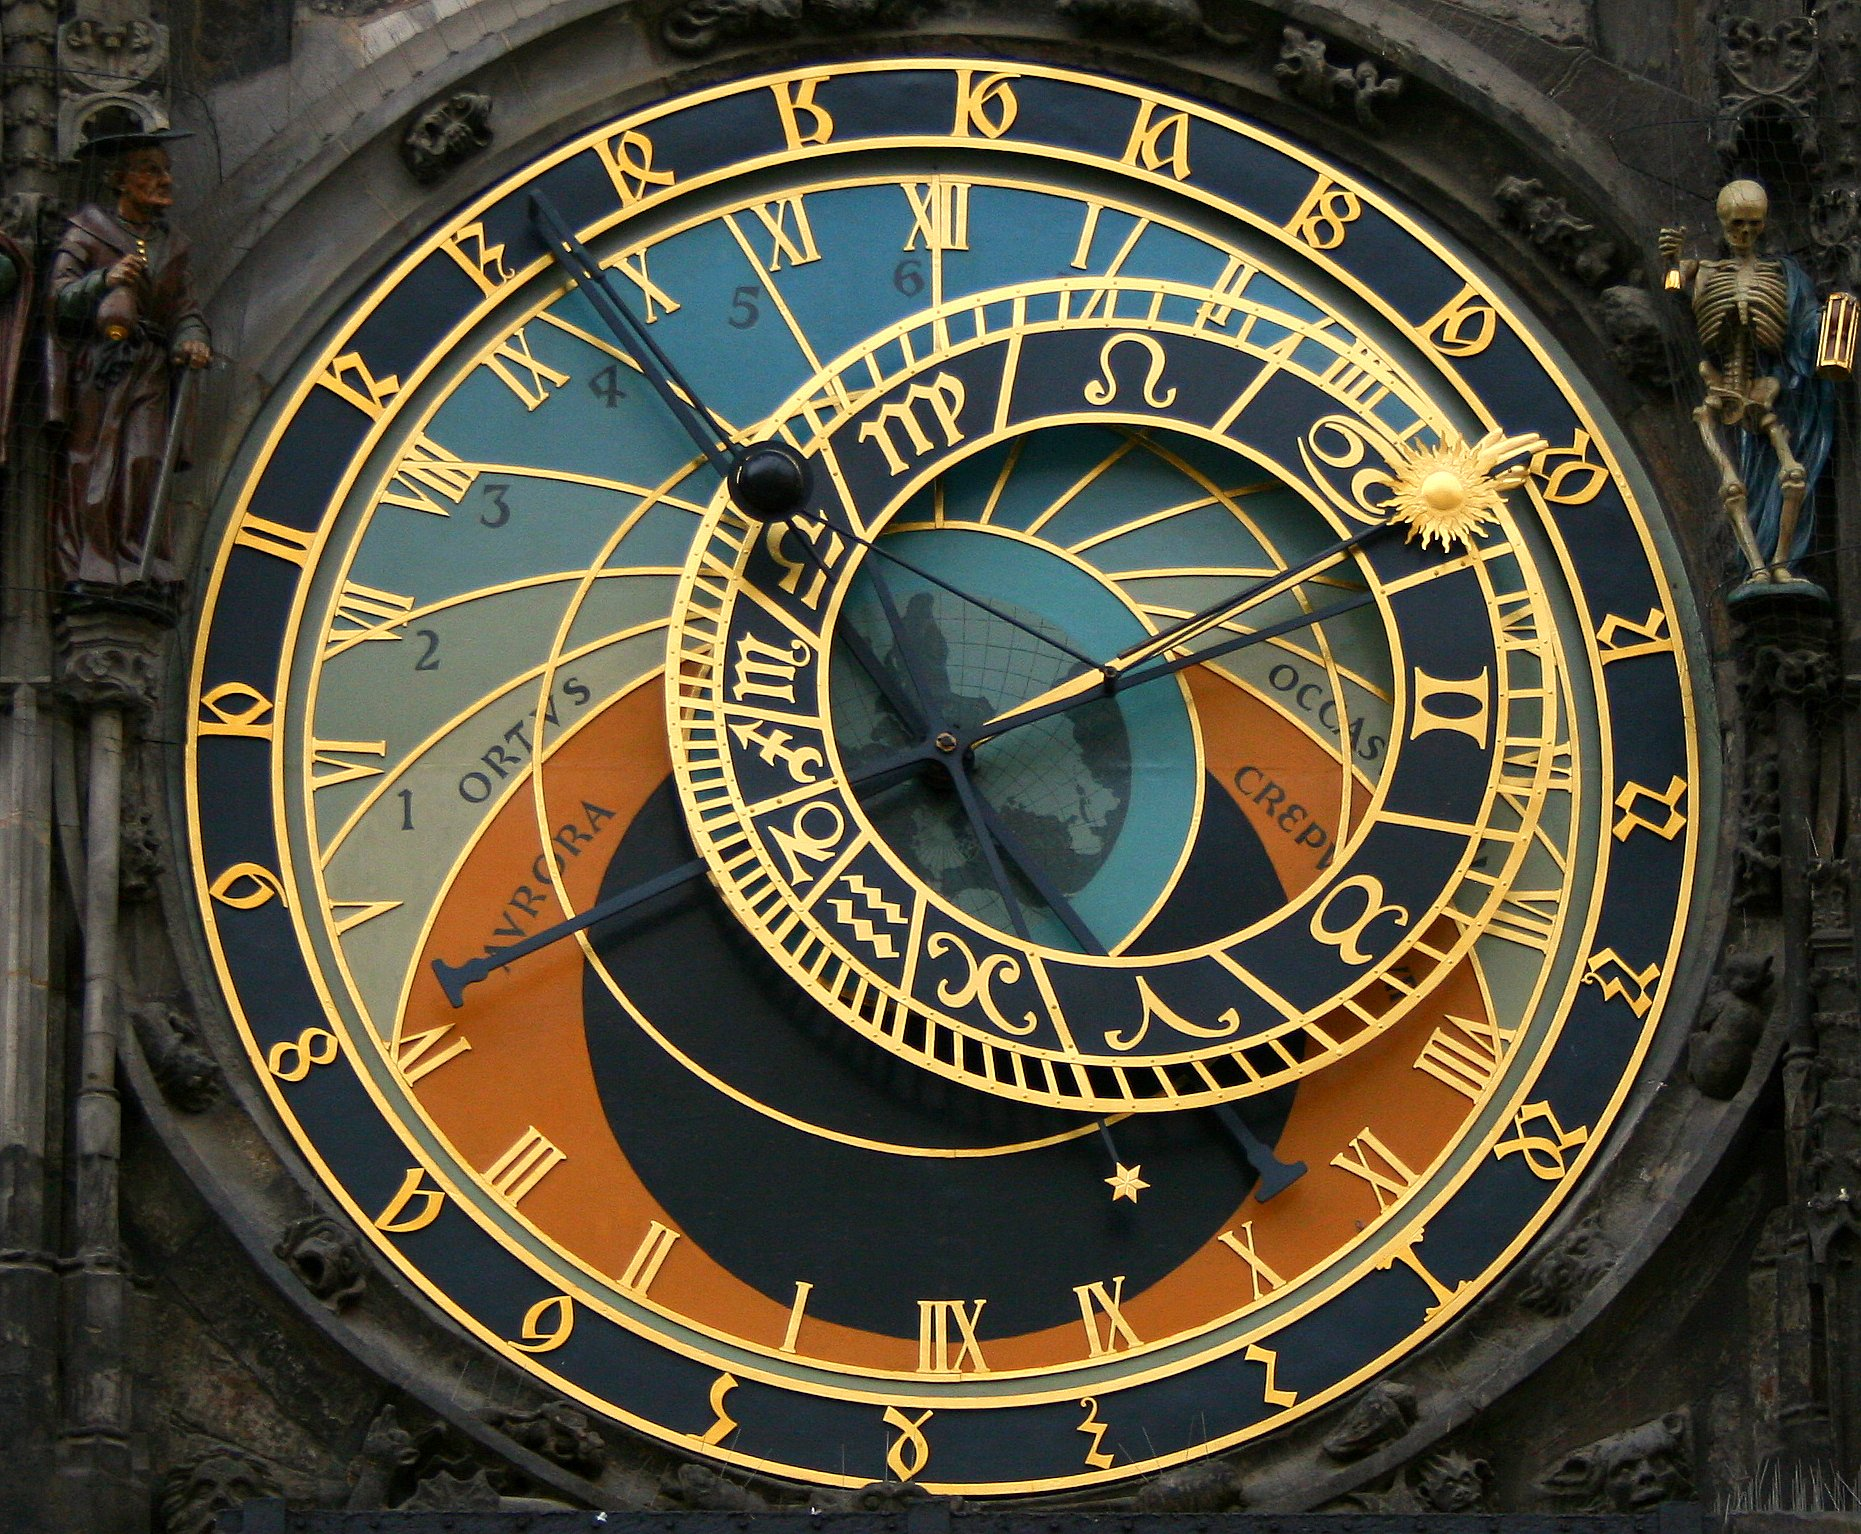 The Astronomical Clock in Prague. Photo courtesy of wikimedia.